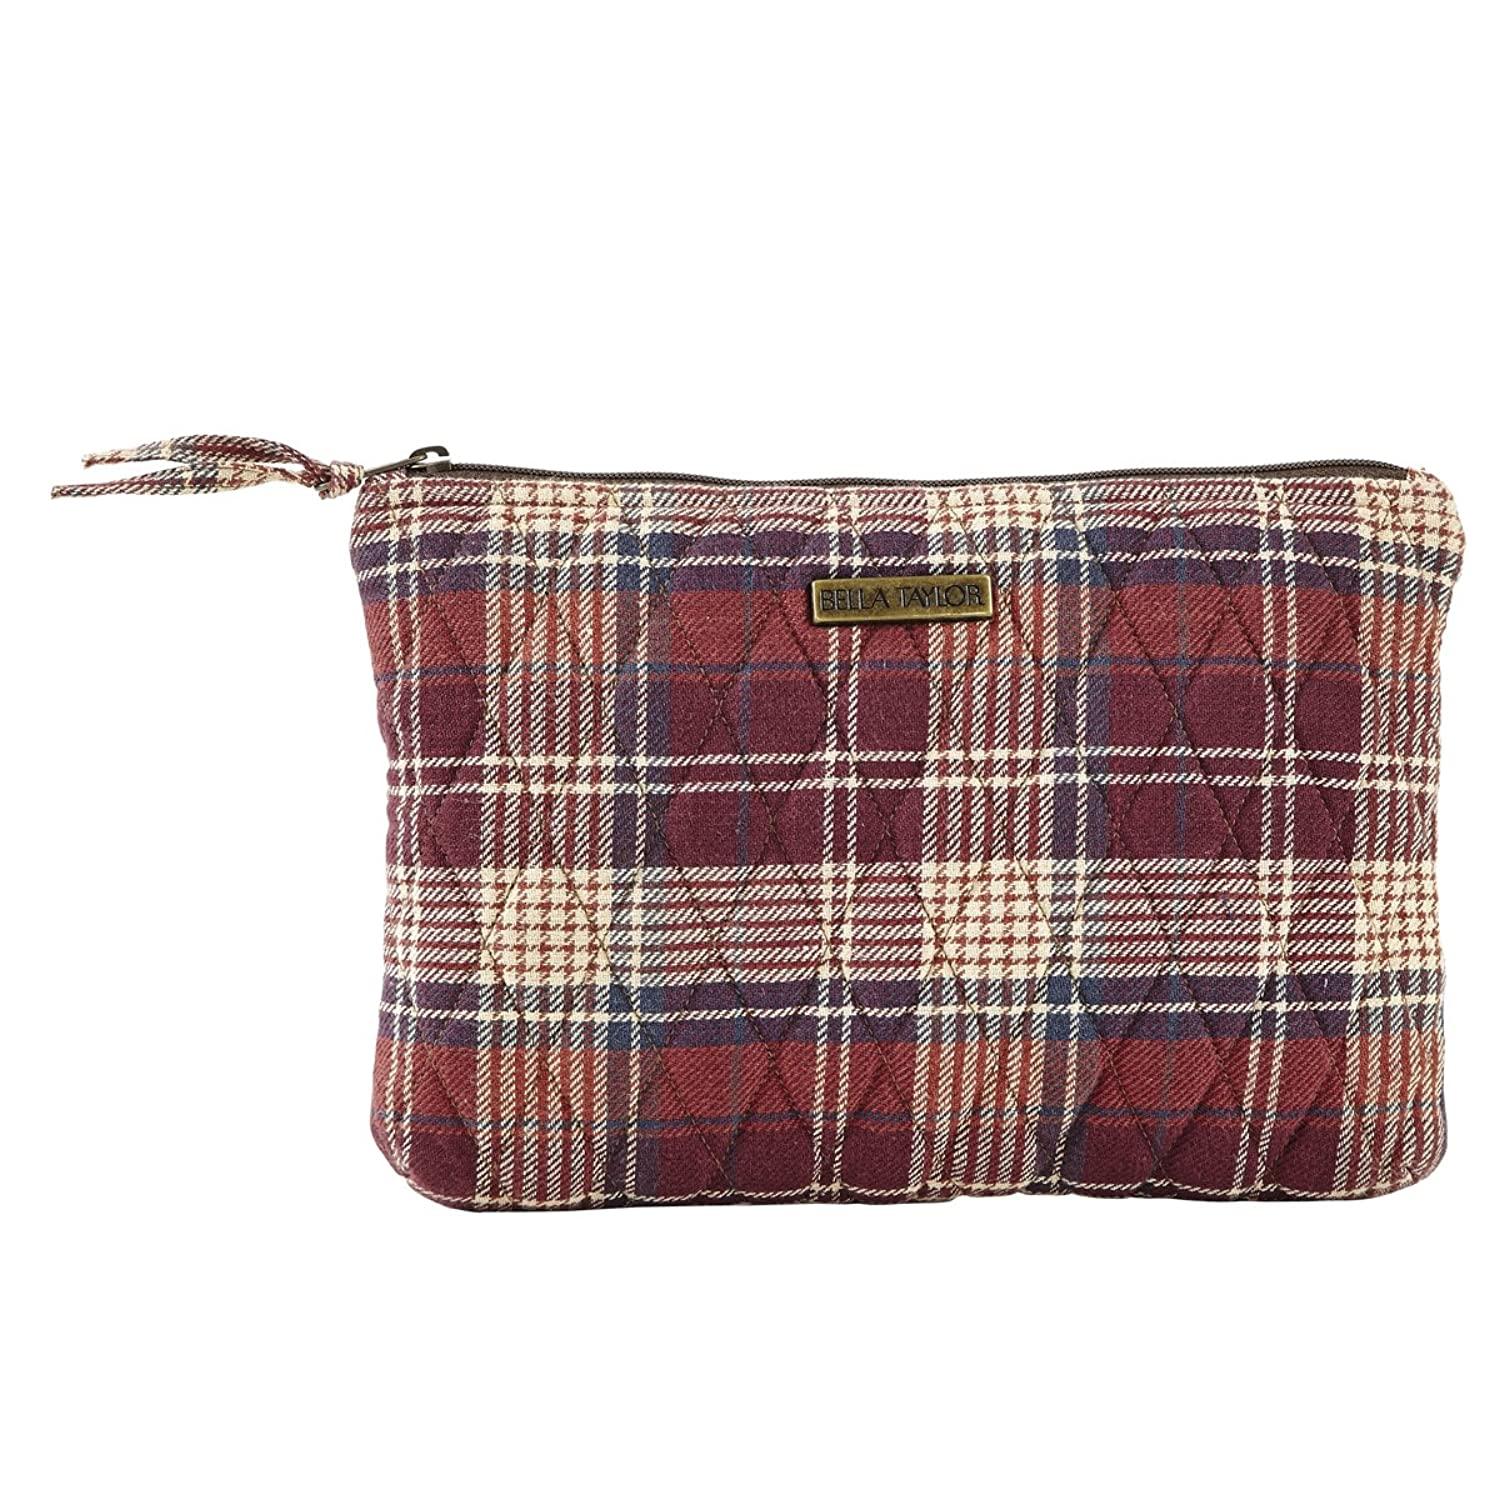 Downton Personal Pouch Set of 2 Cosmetic Bags